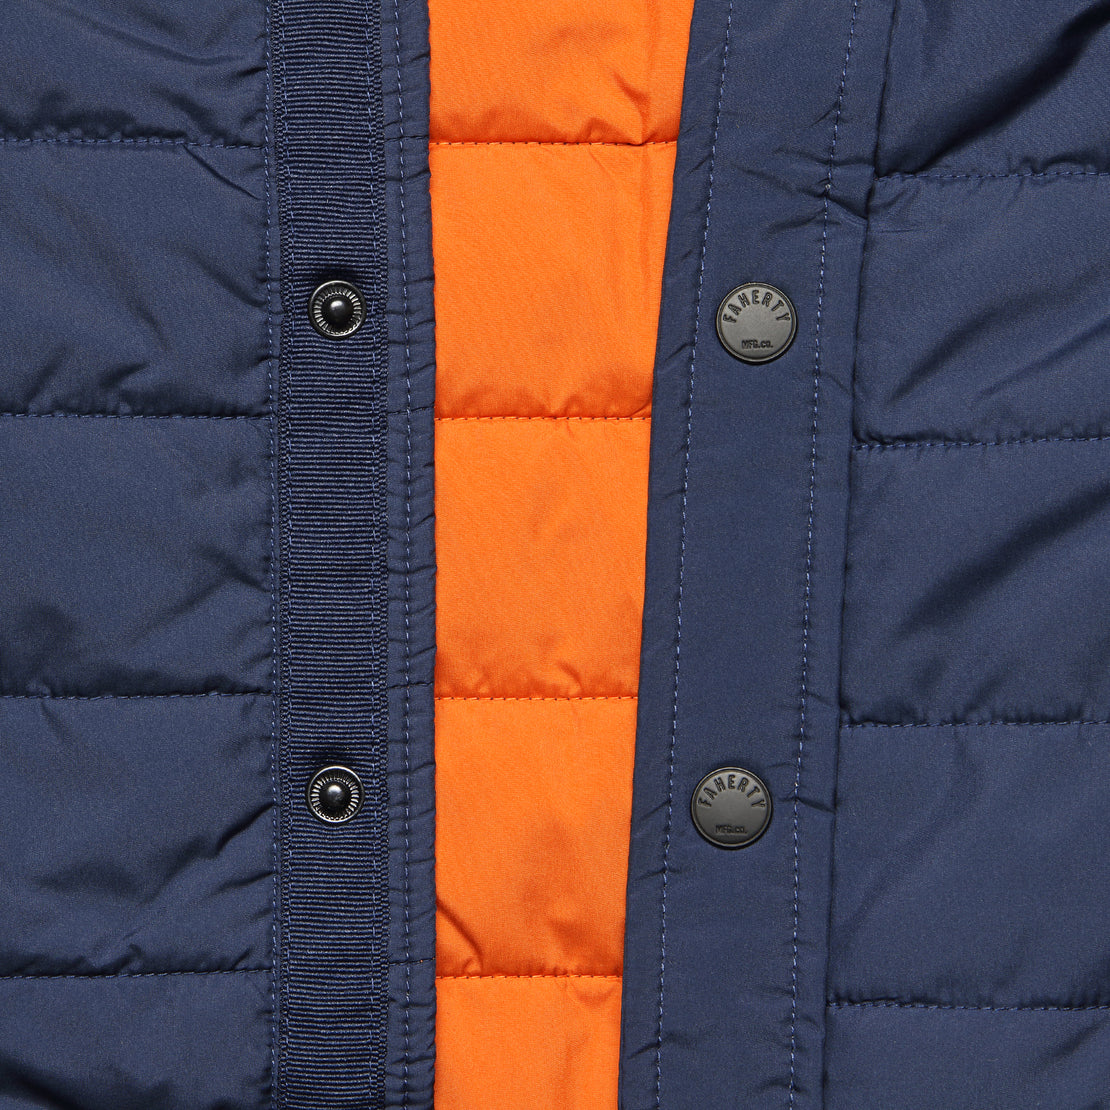 Atmosphere Packable Jacket - Navy